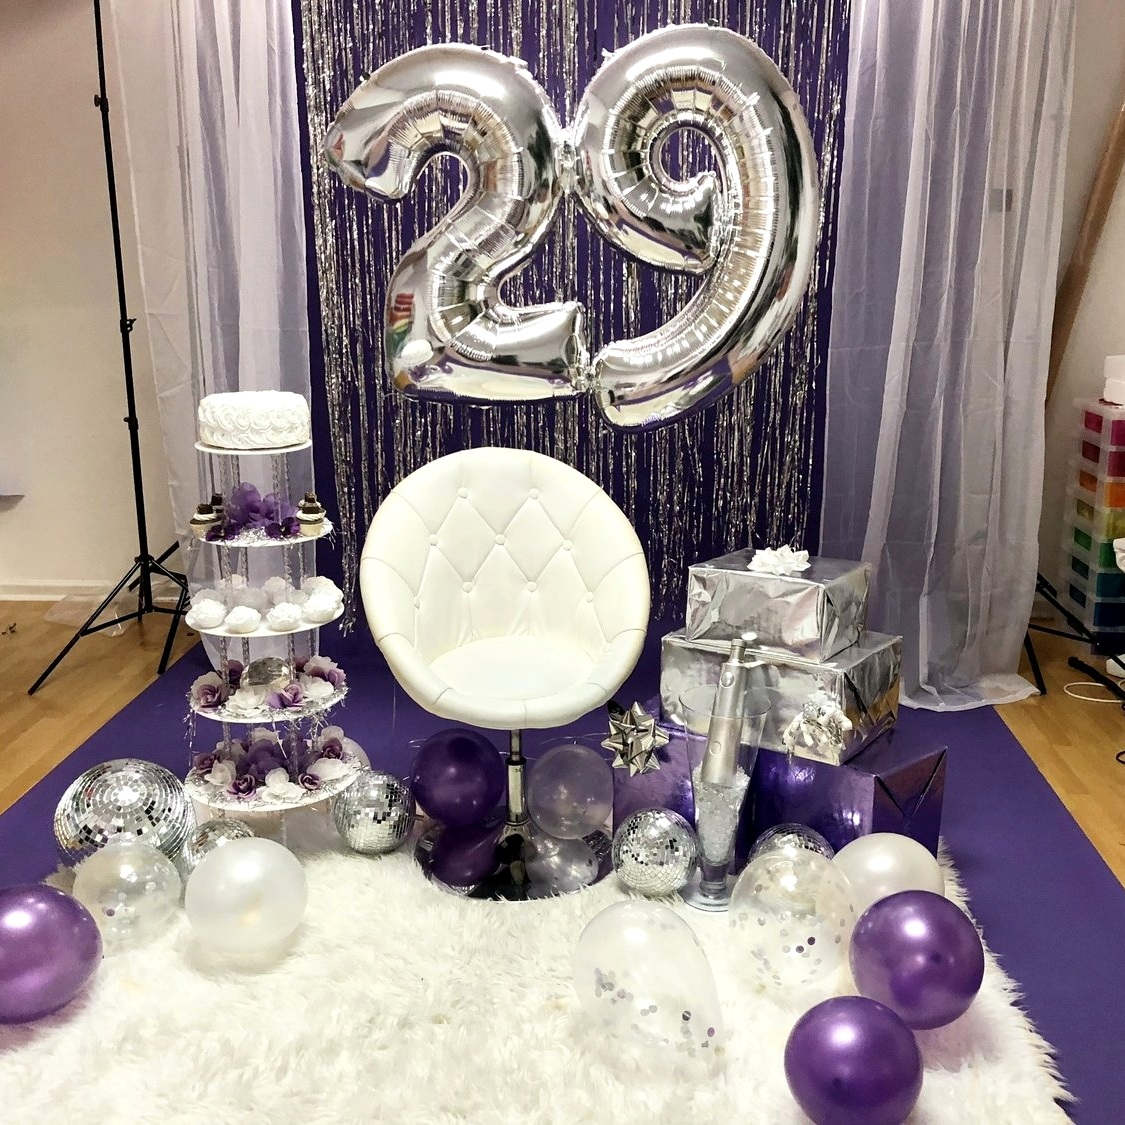 Scene Design Is Example And Is NOT LIMITED To Color Scheme Presented.  Client Only Provided Pre-Filled Helium Numbers (floor balloons provide by photographer)